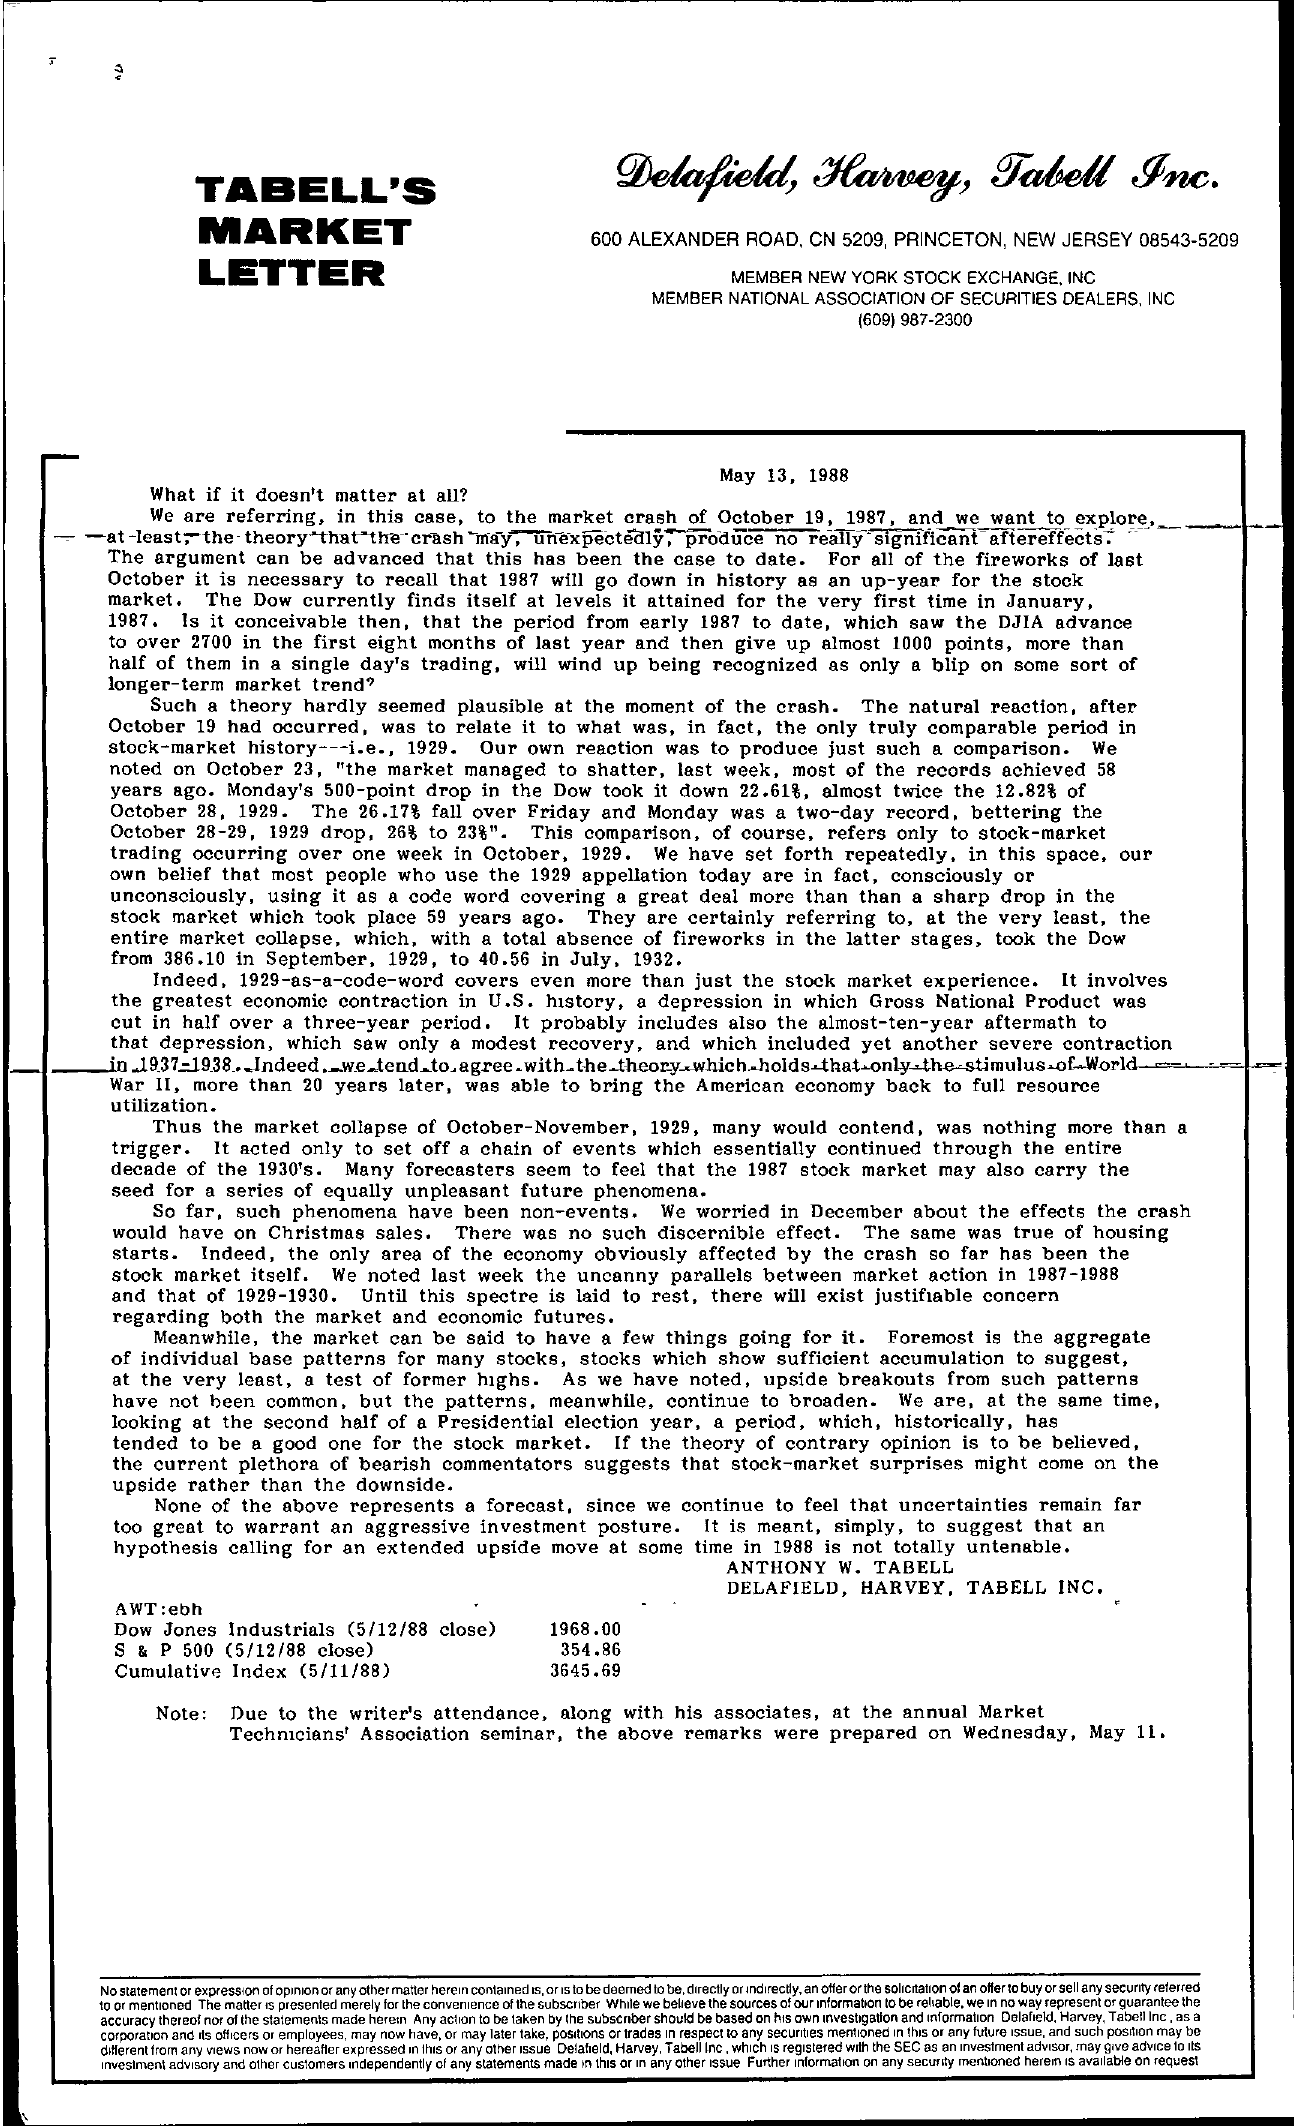 Tabell's Market Letter - May 13, 1988